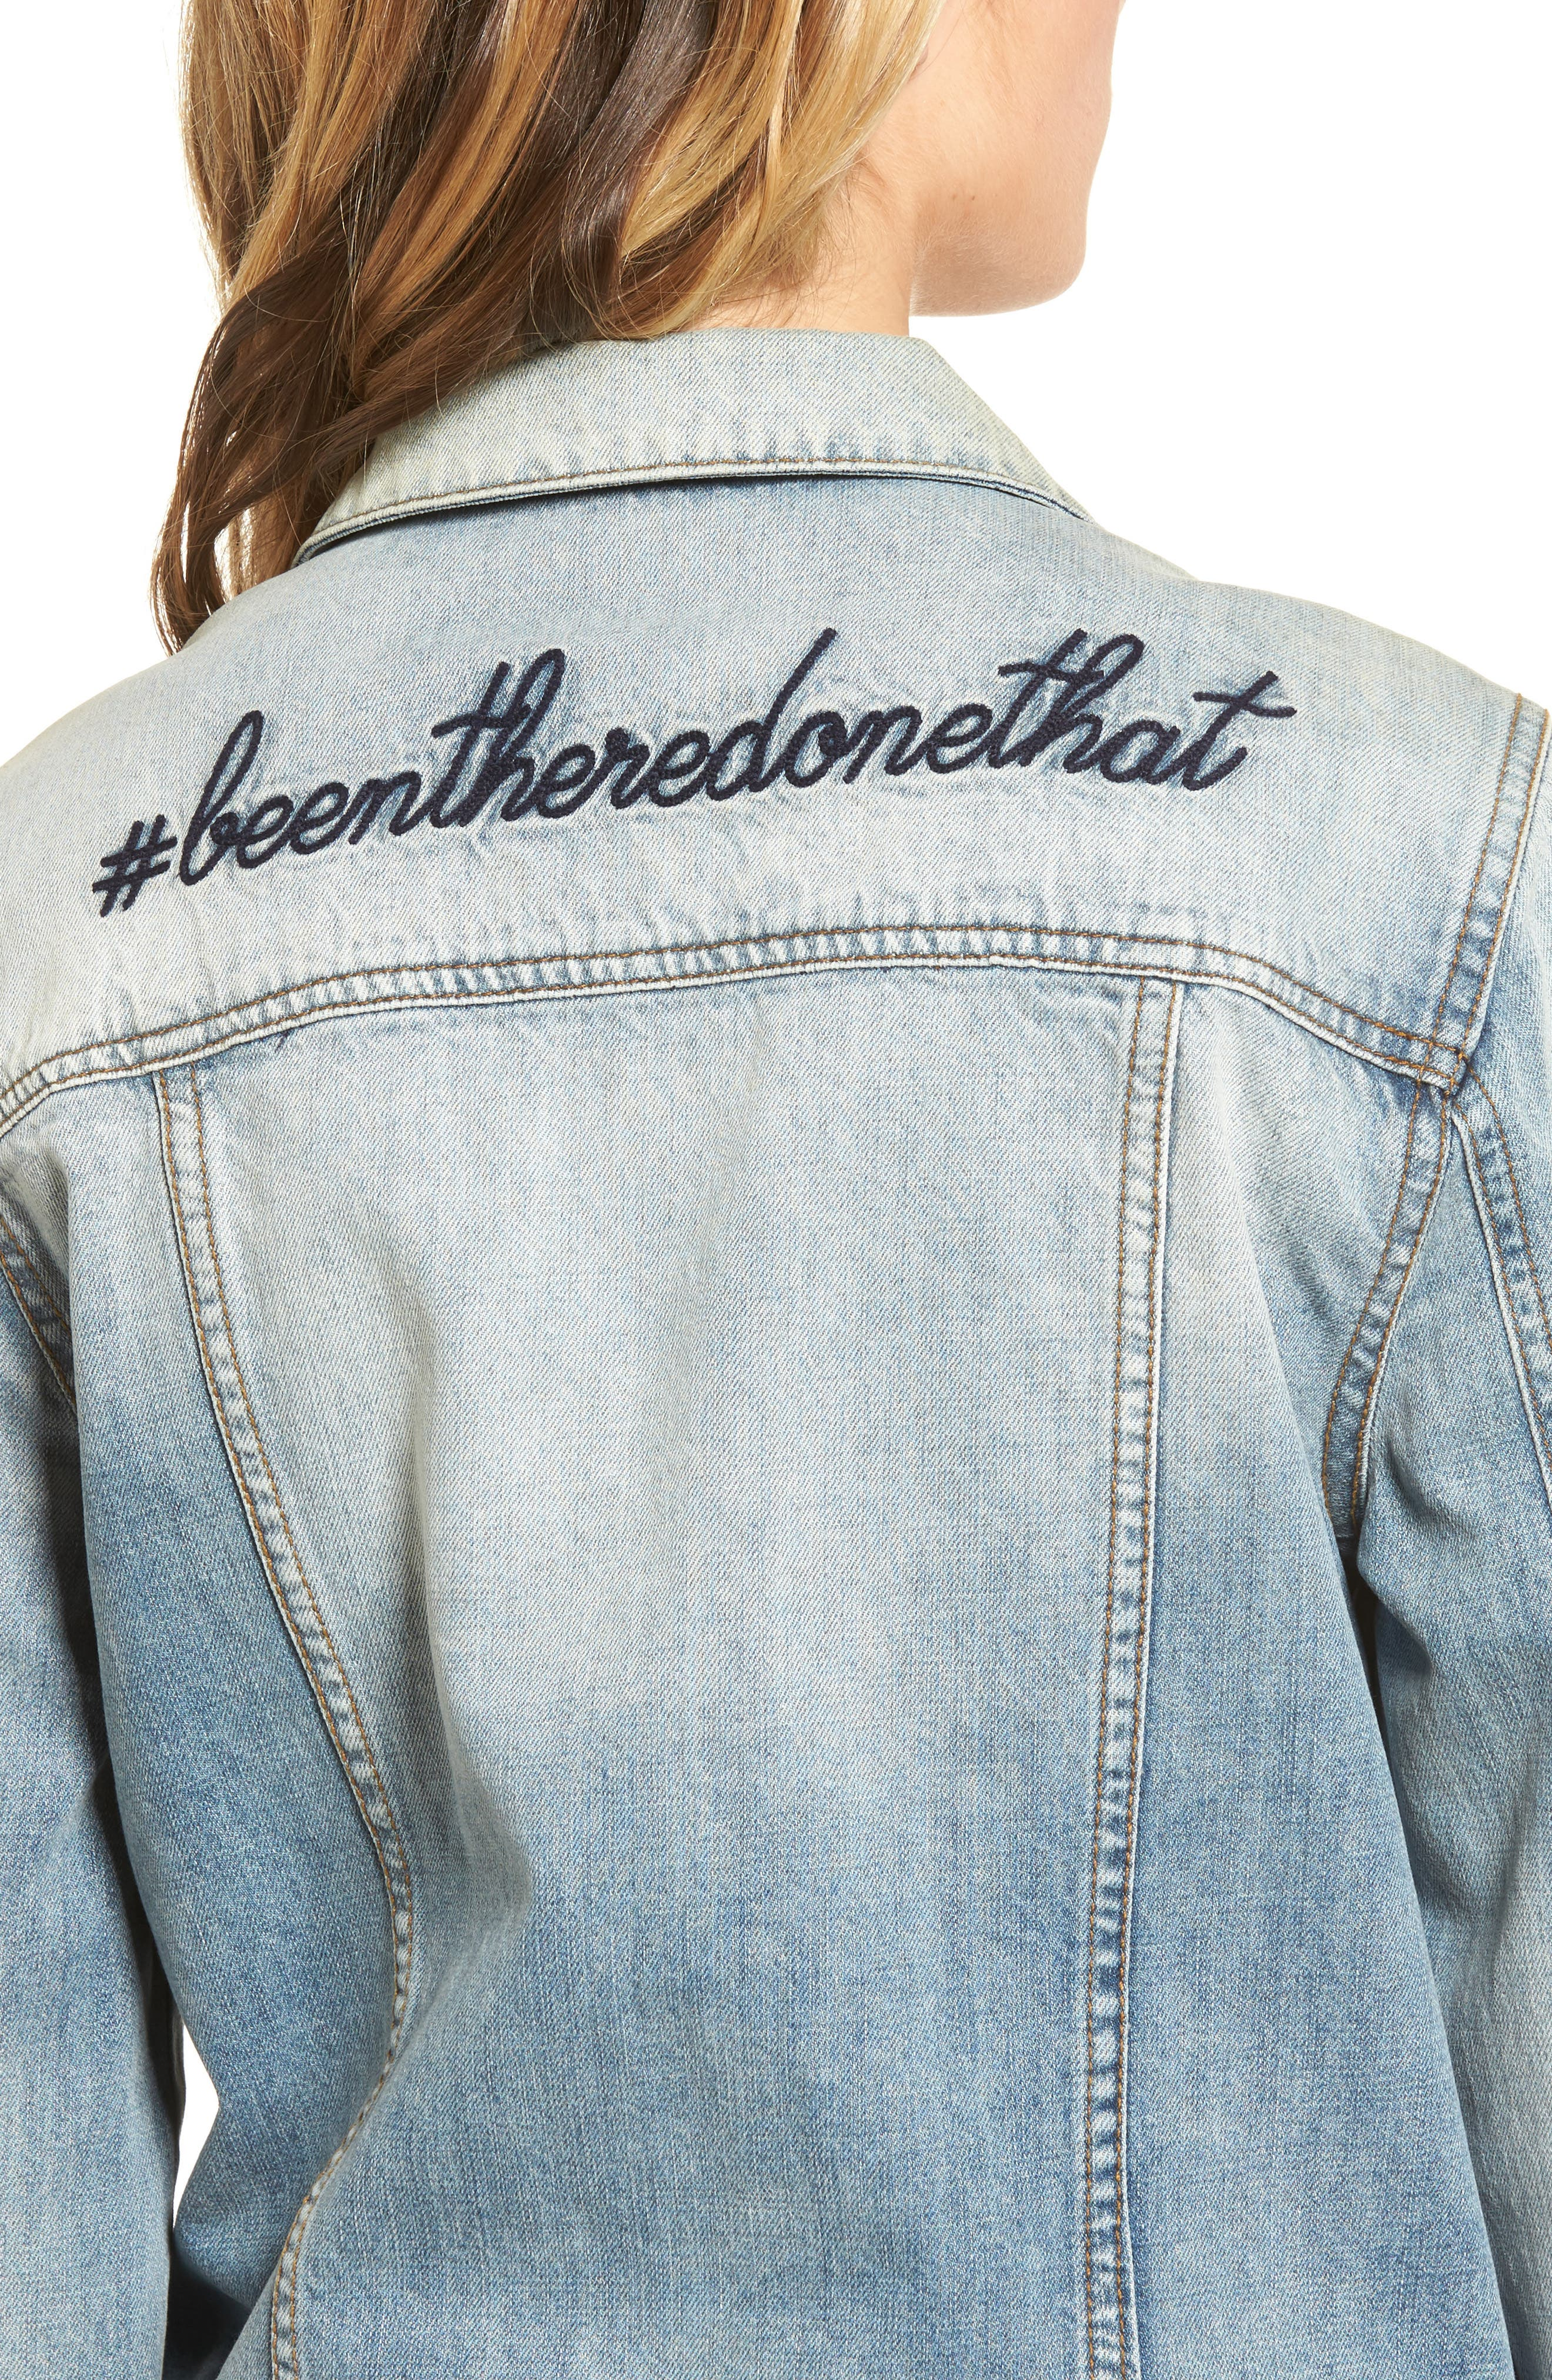 Been There Denim Jacket,                             Alternate thumbnail 4, color,                             400